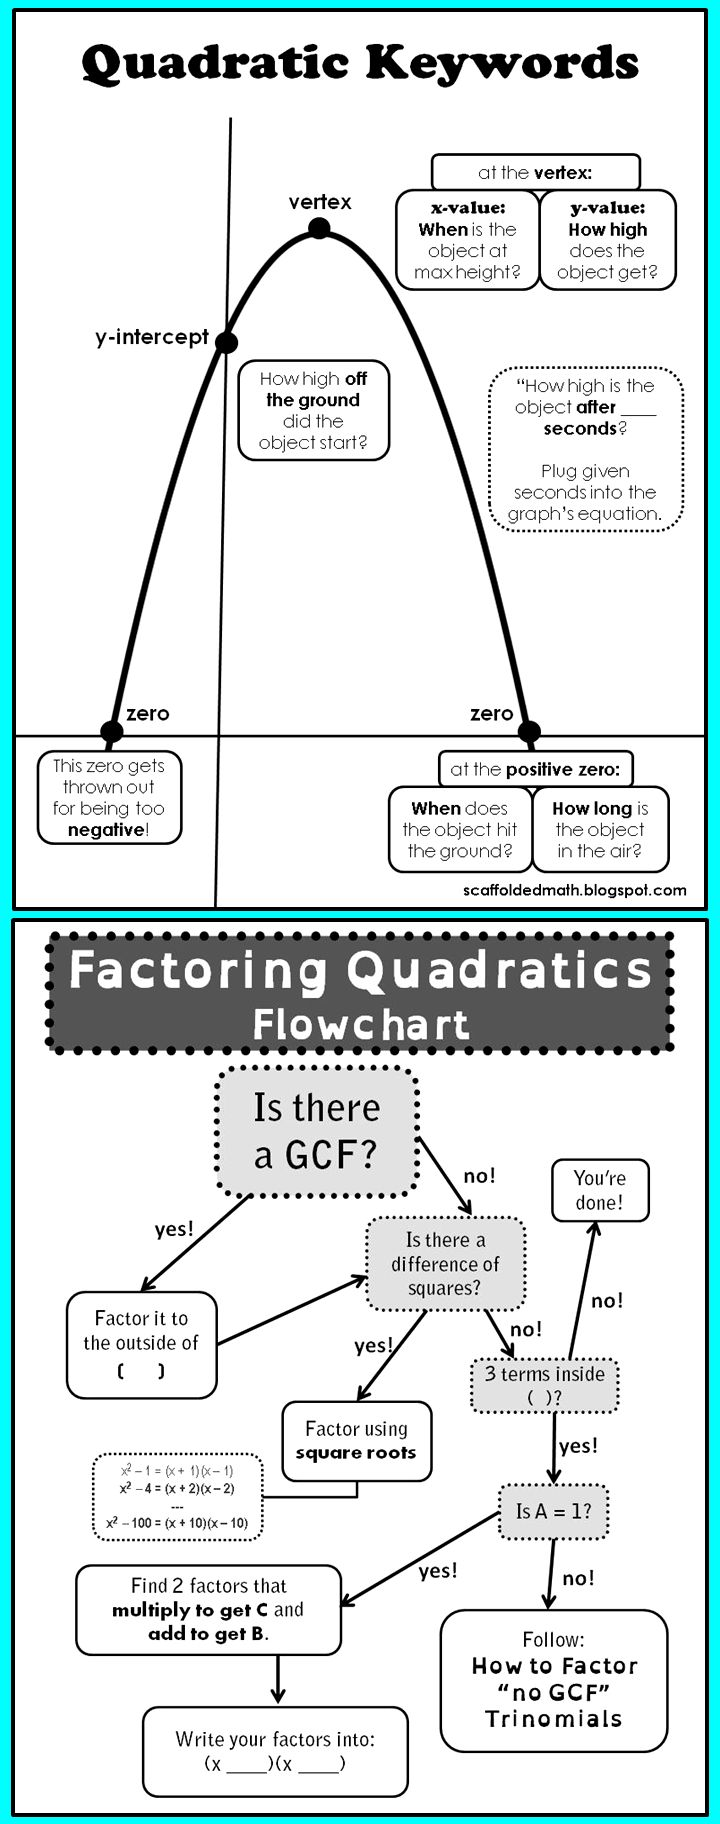 2 free quadratics references for students. One is for quadratic word problems, the other is for factoring quadratics.